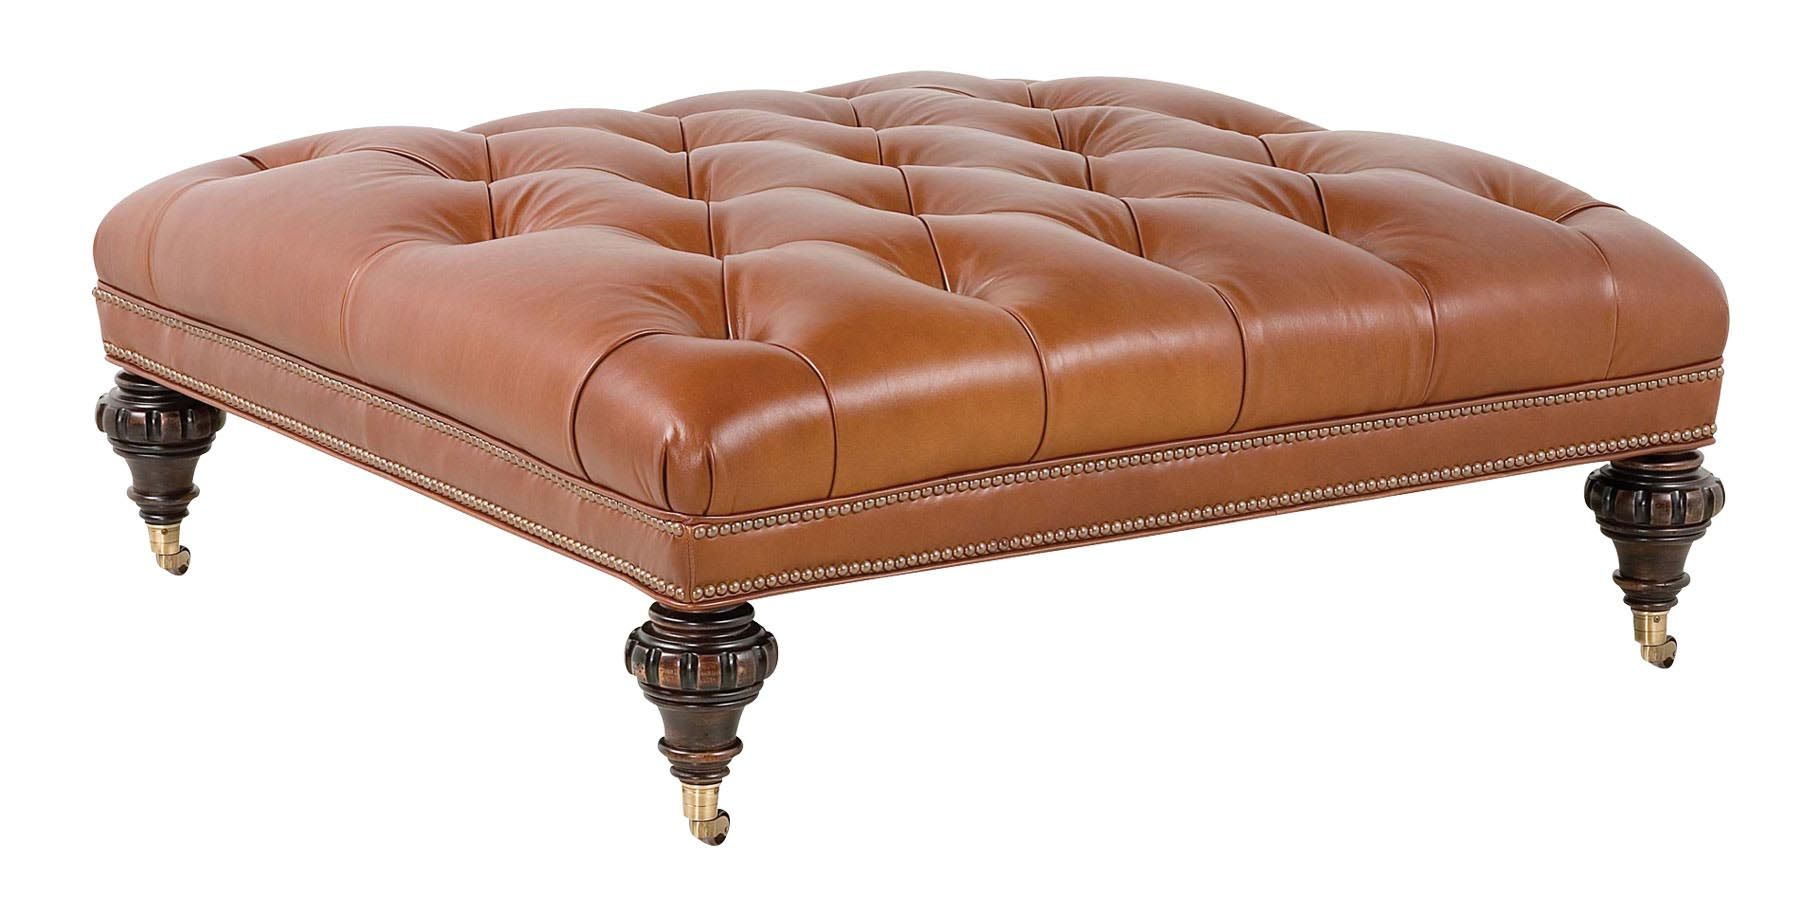 Tufted Leather Ottoman Coffee Table | Coffee Tables | Pinterest